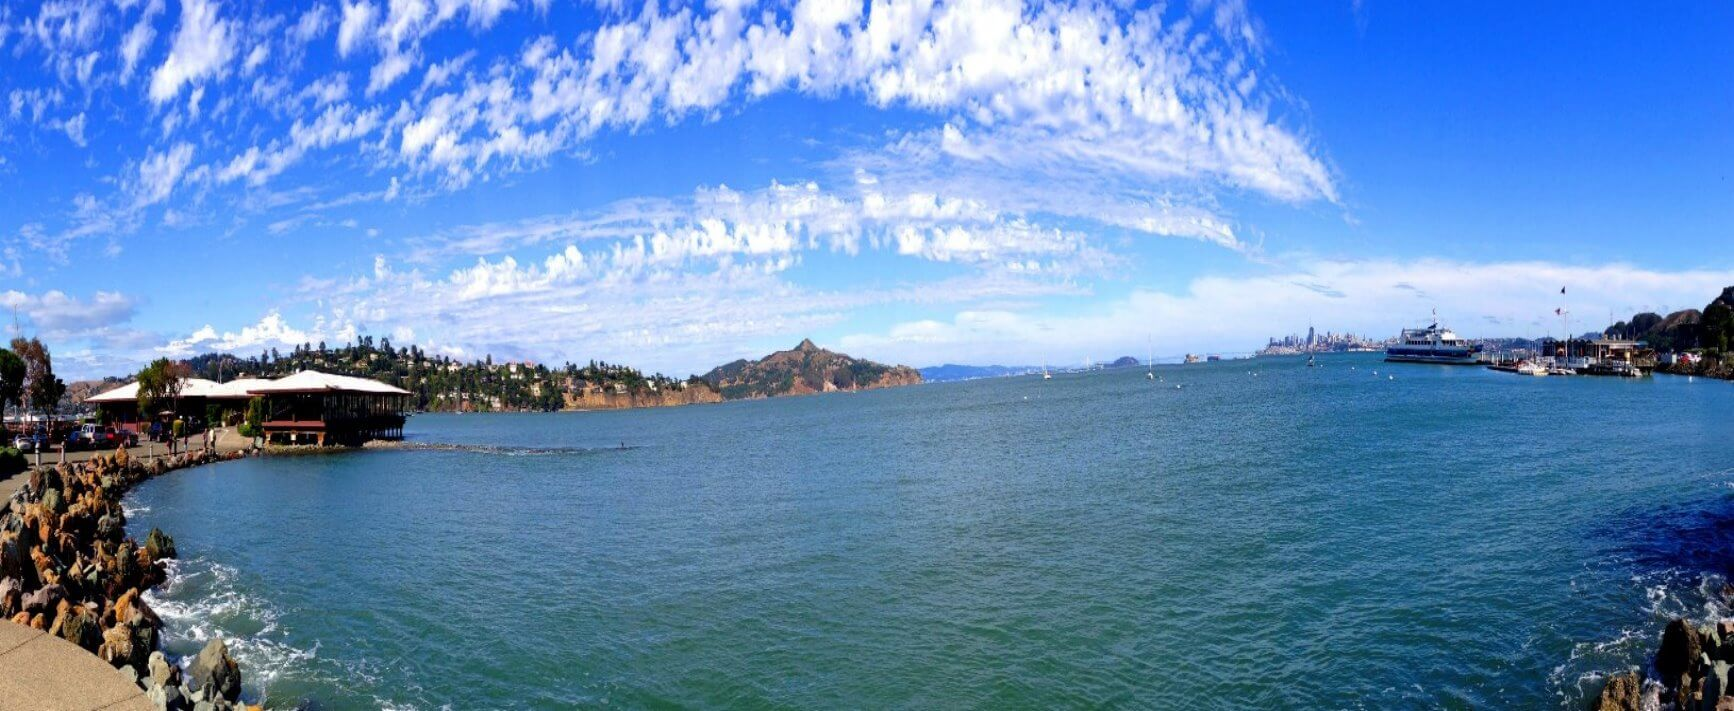 things-to-do-in-sausalito-ferry-cruise-boat-_tours-from-san-francisco